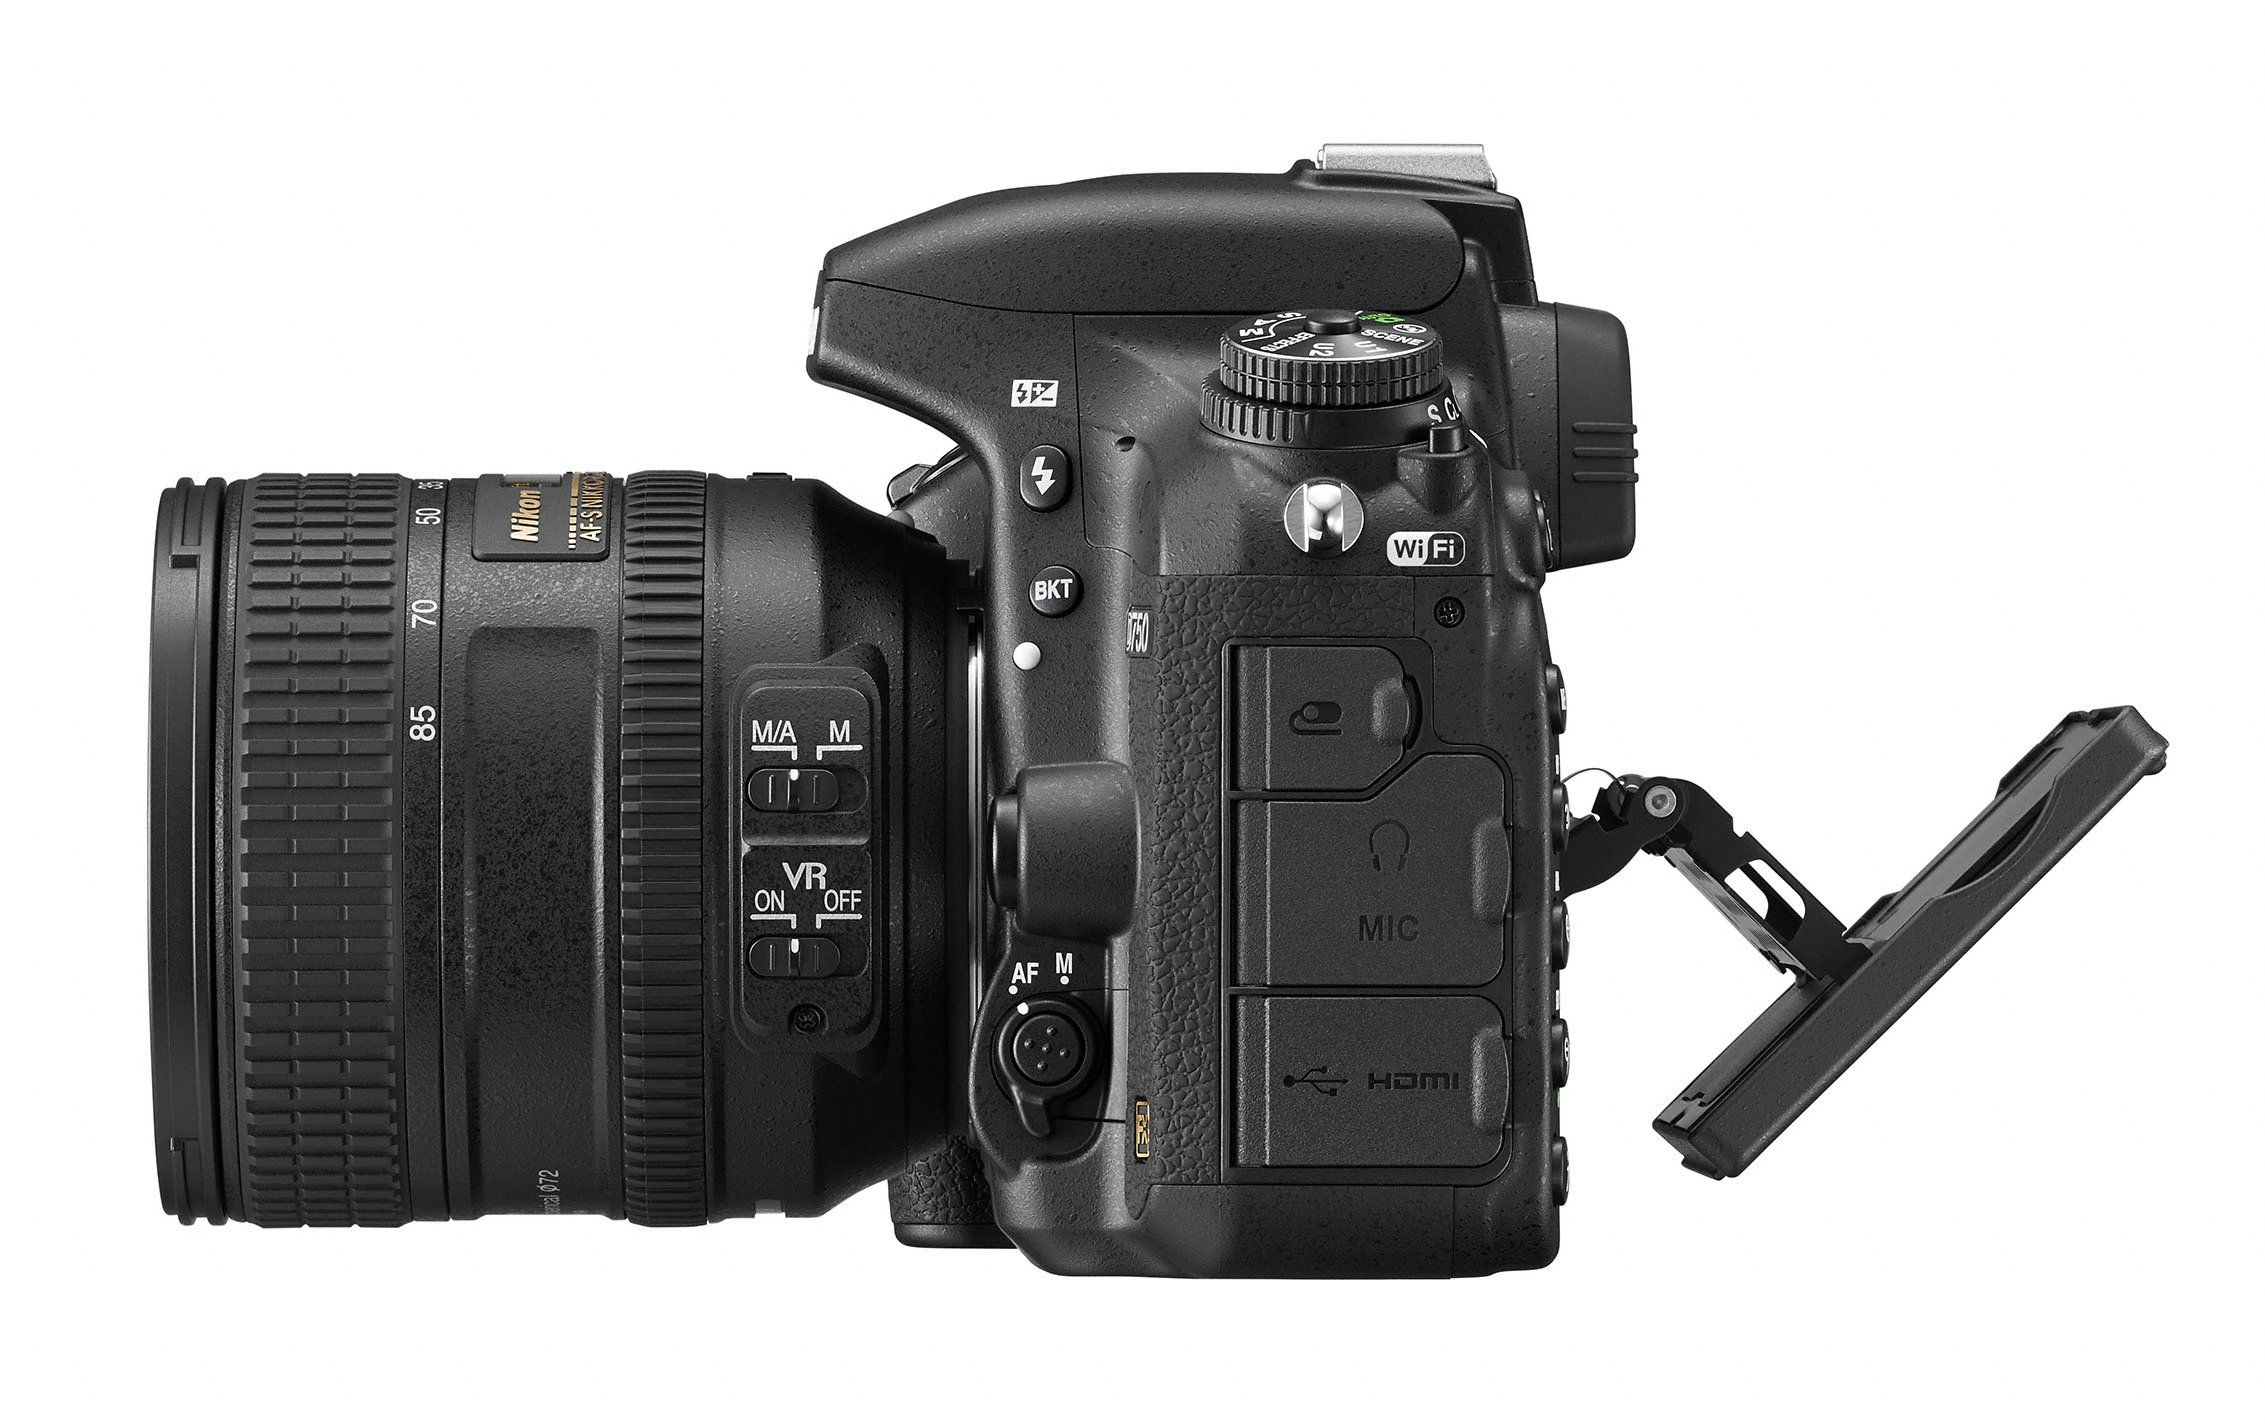 The Nikon D750 is a new full-frame DSLR camera. Description from ...